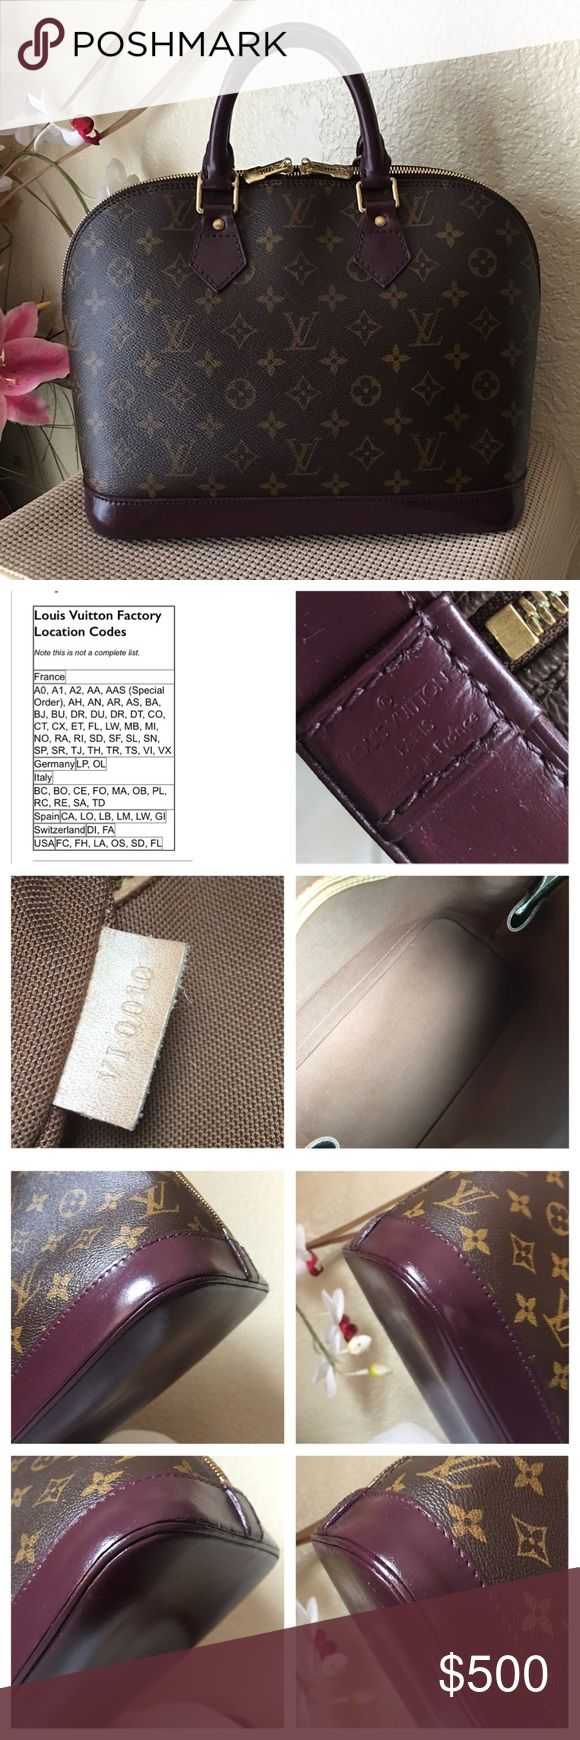 Authentic Louis Vuitton Alma PM. Authentic Louis Vuitton Alma PM ( Vintage ) Leather has been hand painted Burgundy and sealed for protection. In good condition, inside is clean. Just normal signs of use, minor scratches, scuff, rub that are hardly noticeable. Please review photos. (No box, padlock, key, dust bag or receipt) Date Code: VI0010. ❌No Trade Please❌Poshmark offers free item authentication on all items $500 or more via Posh Concierge service. Thank you for stopping by and have a…